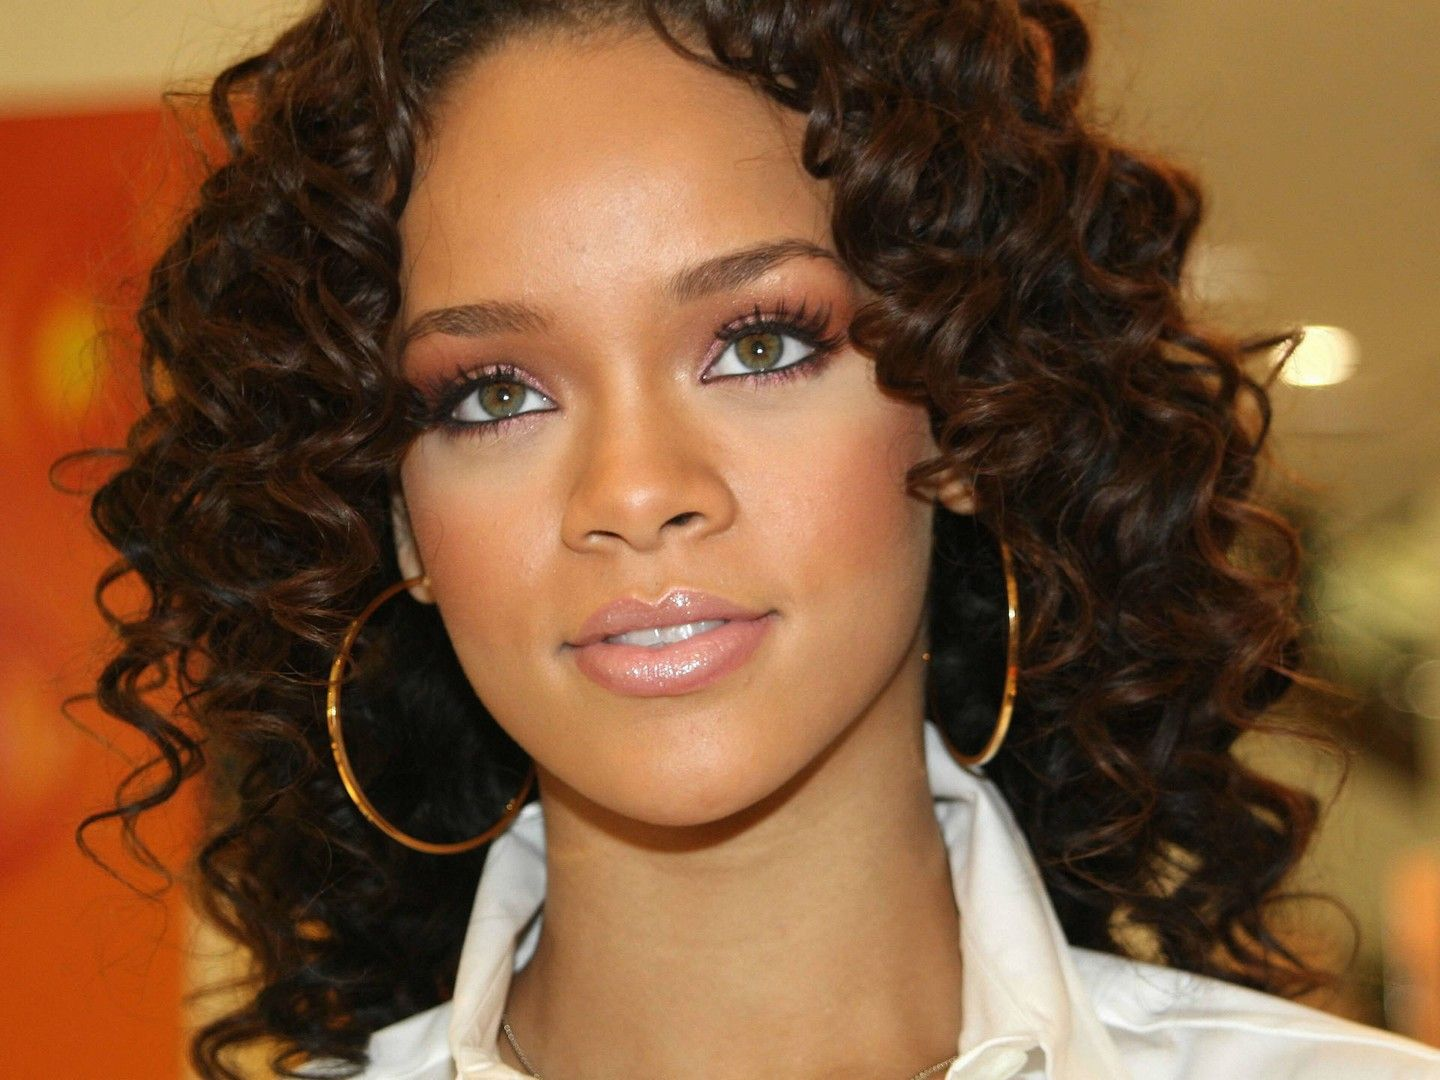 Rihanna Hairstyles: One Of The Best Eyes I've Ever Seen. Hazel Green Sexy Eyes